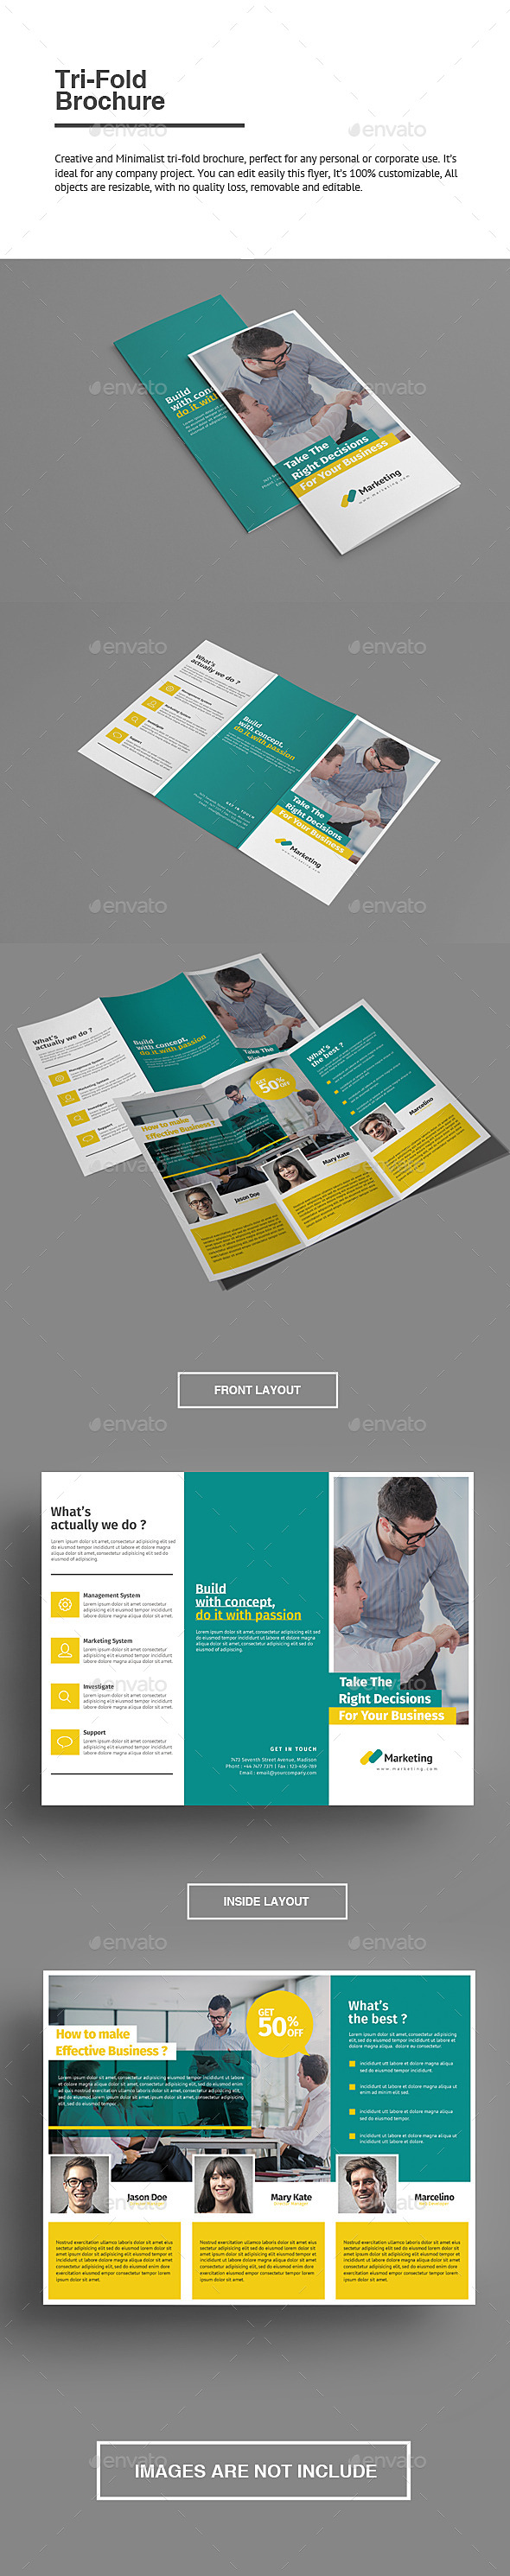 GraphicRiver Trifold Brochure 9385453